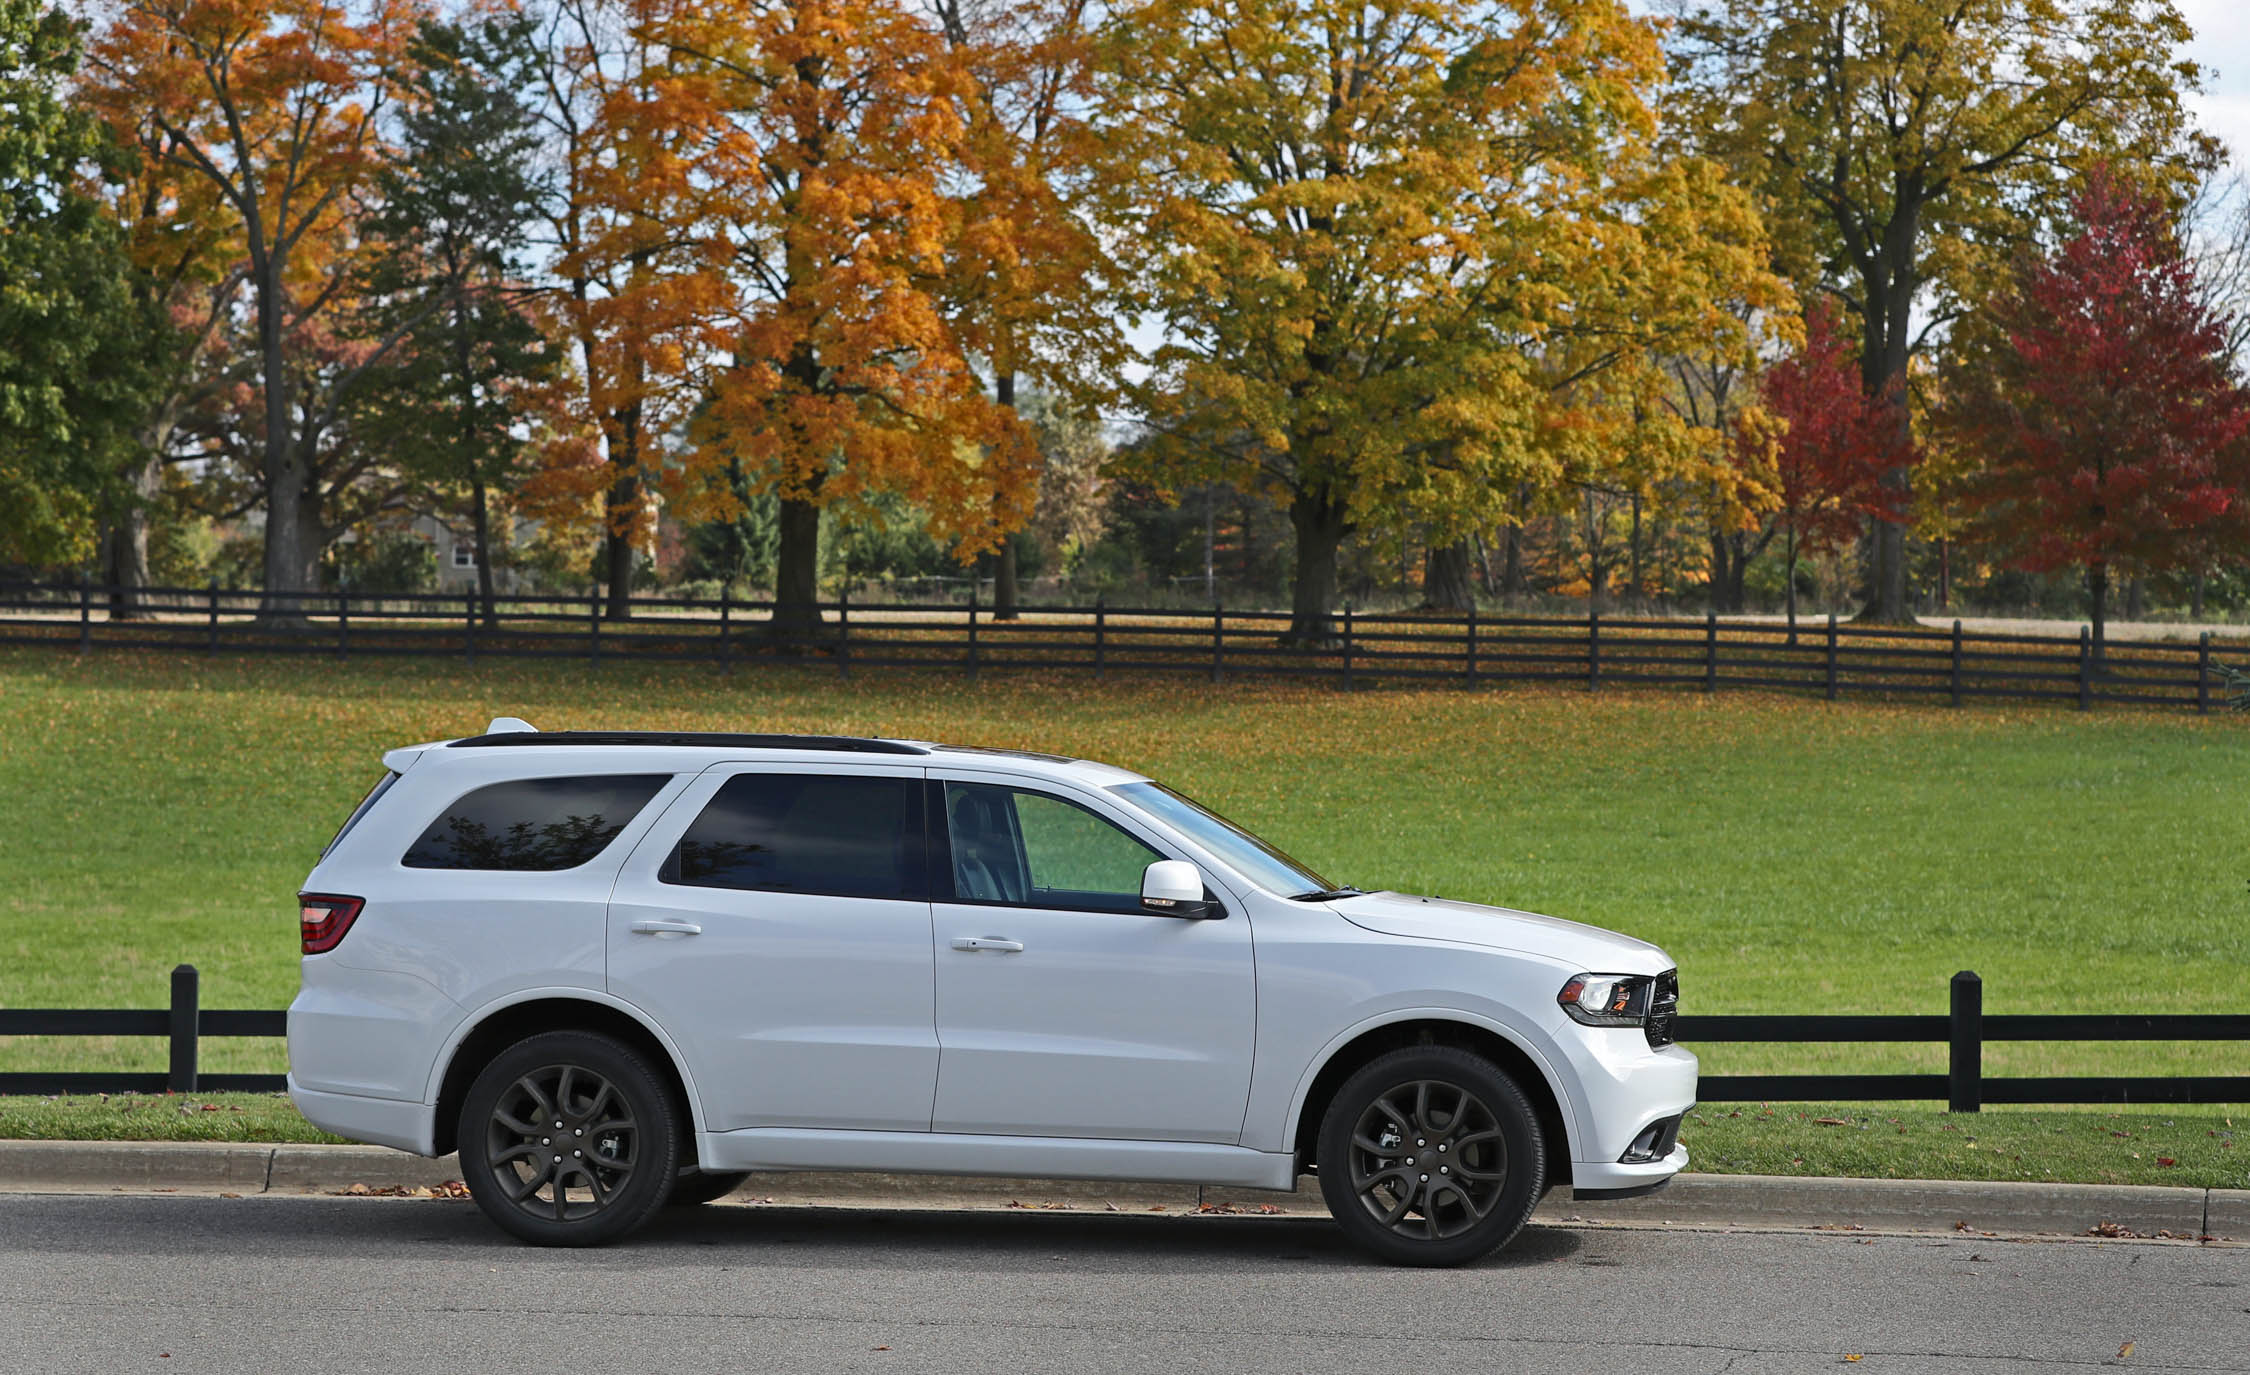 2017 Dodge Durango GT AWD (Photo 10 of 12)